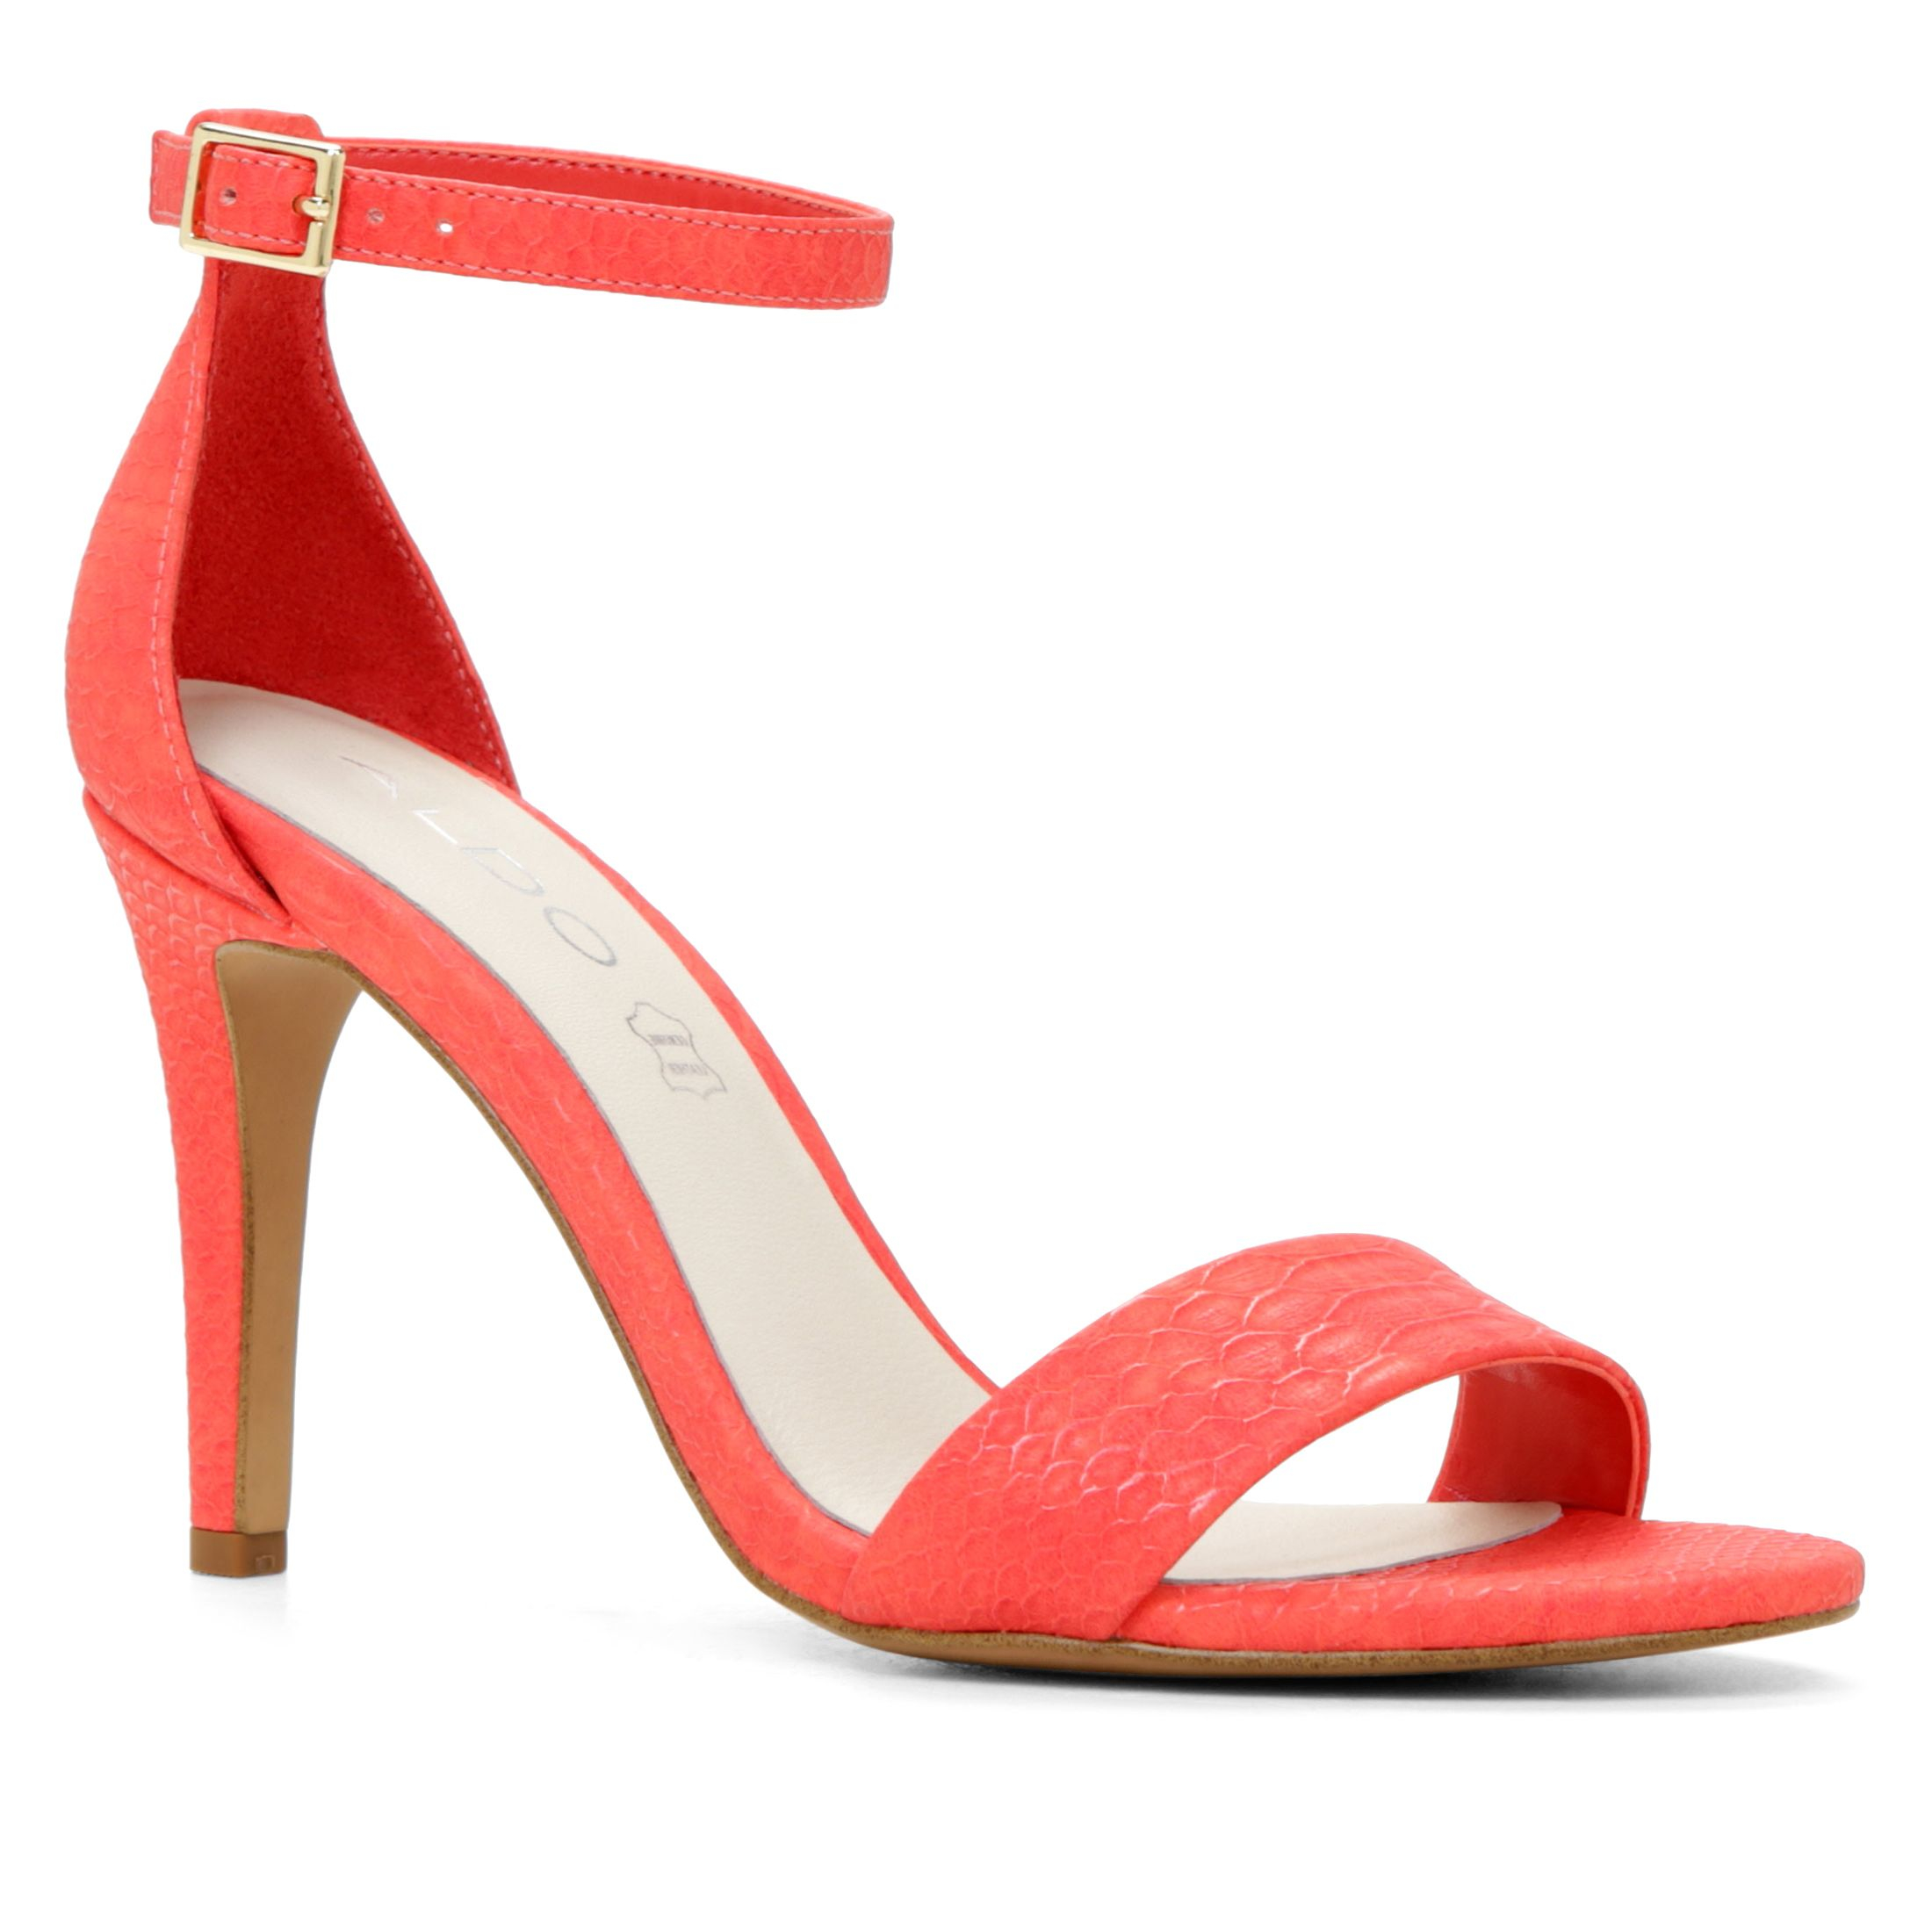 Aldo Ibenama-u Ankle Strap High Heel Sandals in Orange | Lyst